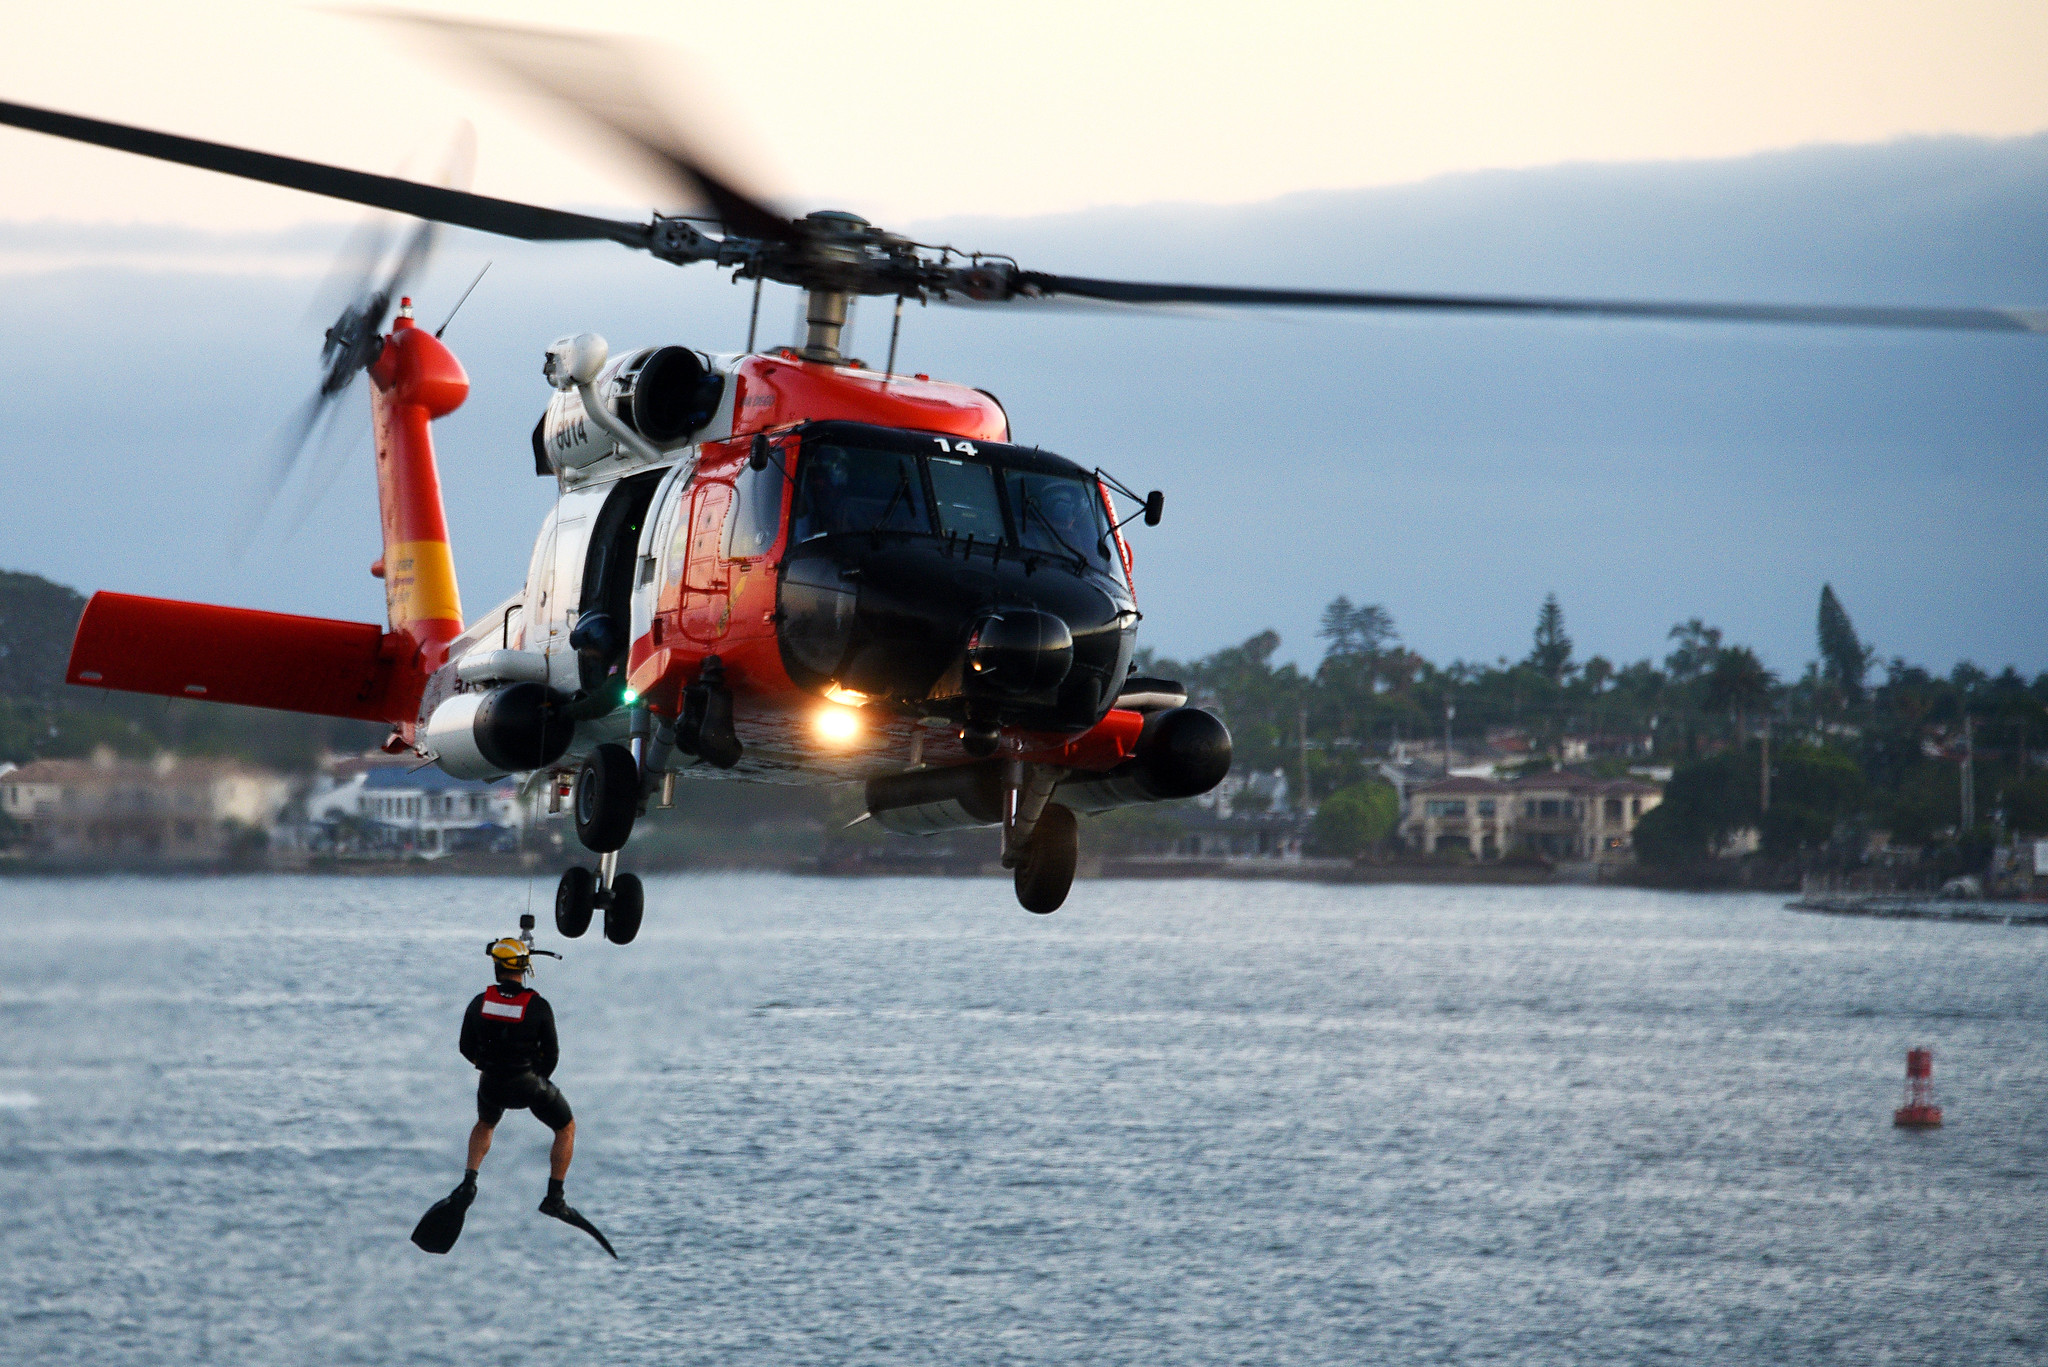 A U.S. Coast Guard Sector San Diego MH-60T Jayhawk helicopter crew conducts a search and rescue demonstration in San Diego, Aug. 10, 2019. (Petty Officer 1st Class Patrick Kelley/Coast Guard)